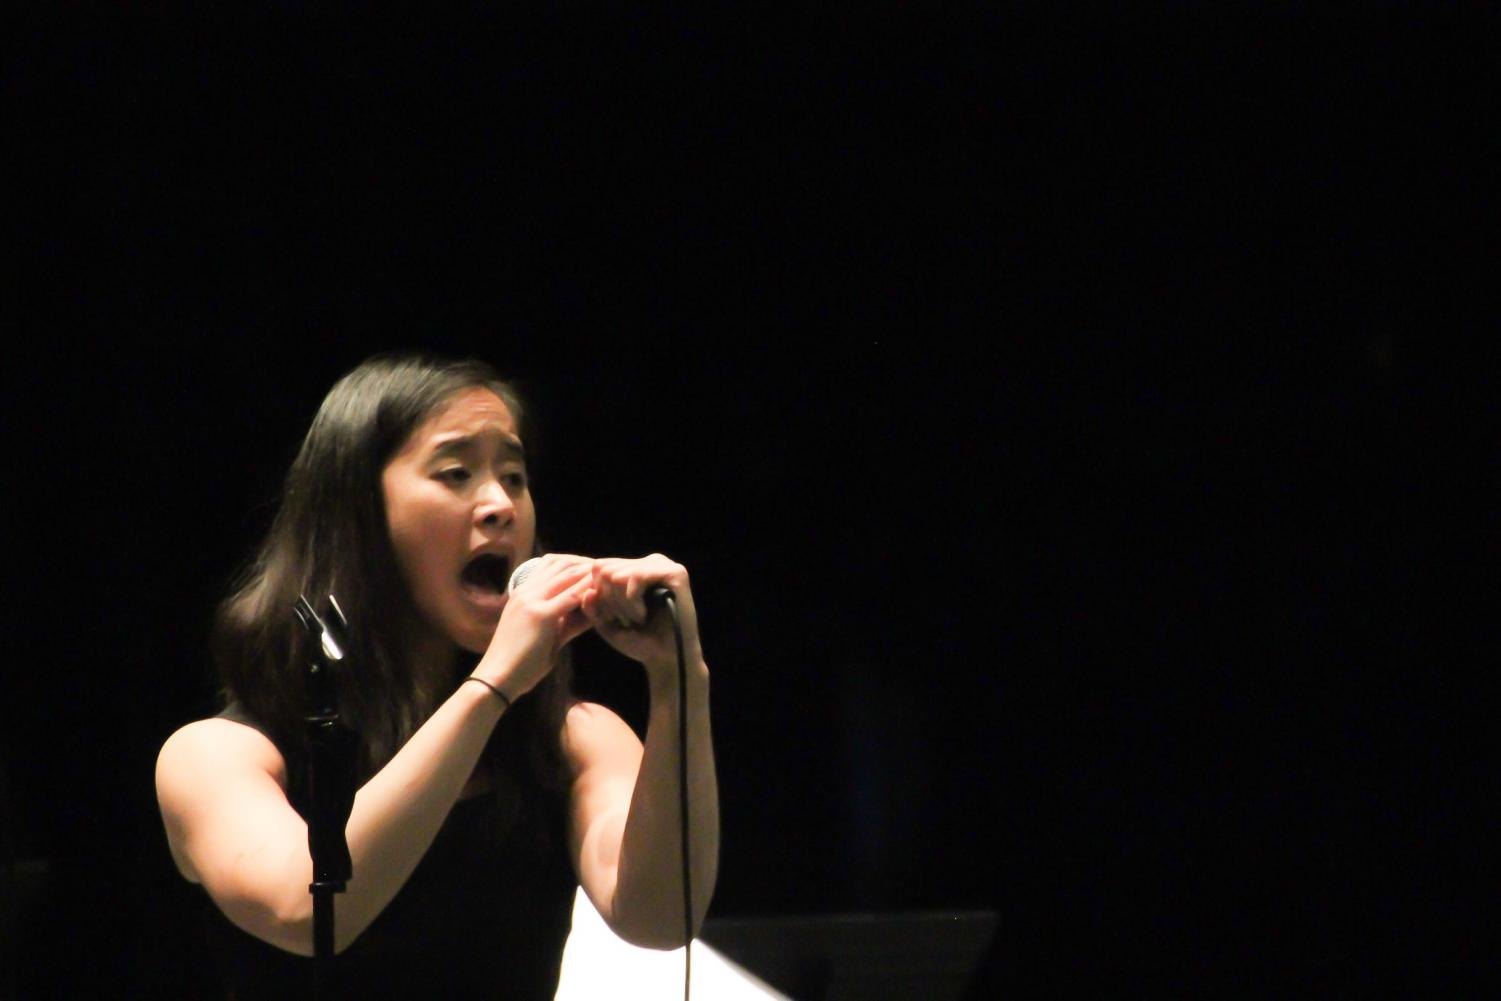 +Carolyn+Tran-Math%2C+vocalist+for+the+De+Anza+College+Jazz+Combo+band%2C+delivers+a+soulfully+high+register+vocal+rendition+of+%22Have+Yourself+a+Merry+Little+Christmas%2C%22+by+Hugh+Martin+at+An+Evening+of+Jazz+at+the+VPAC+center+on+Dec.+3.